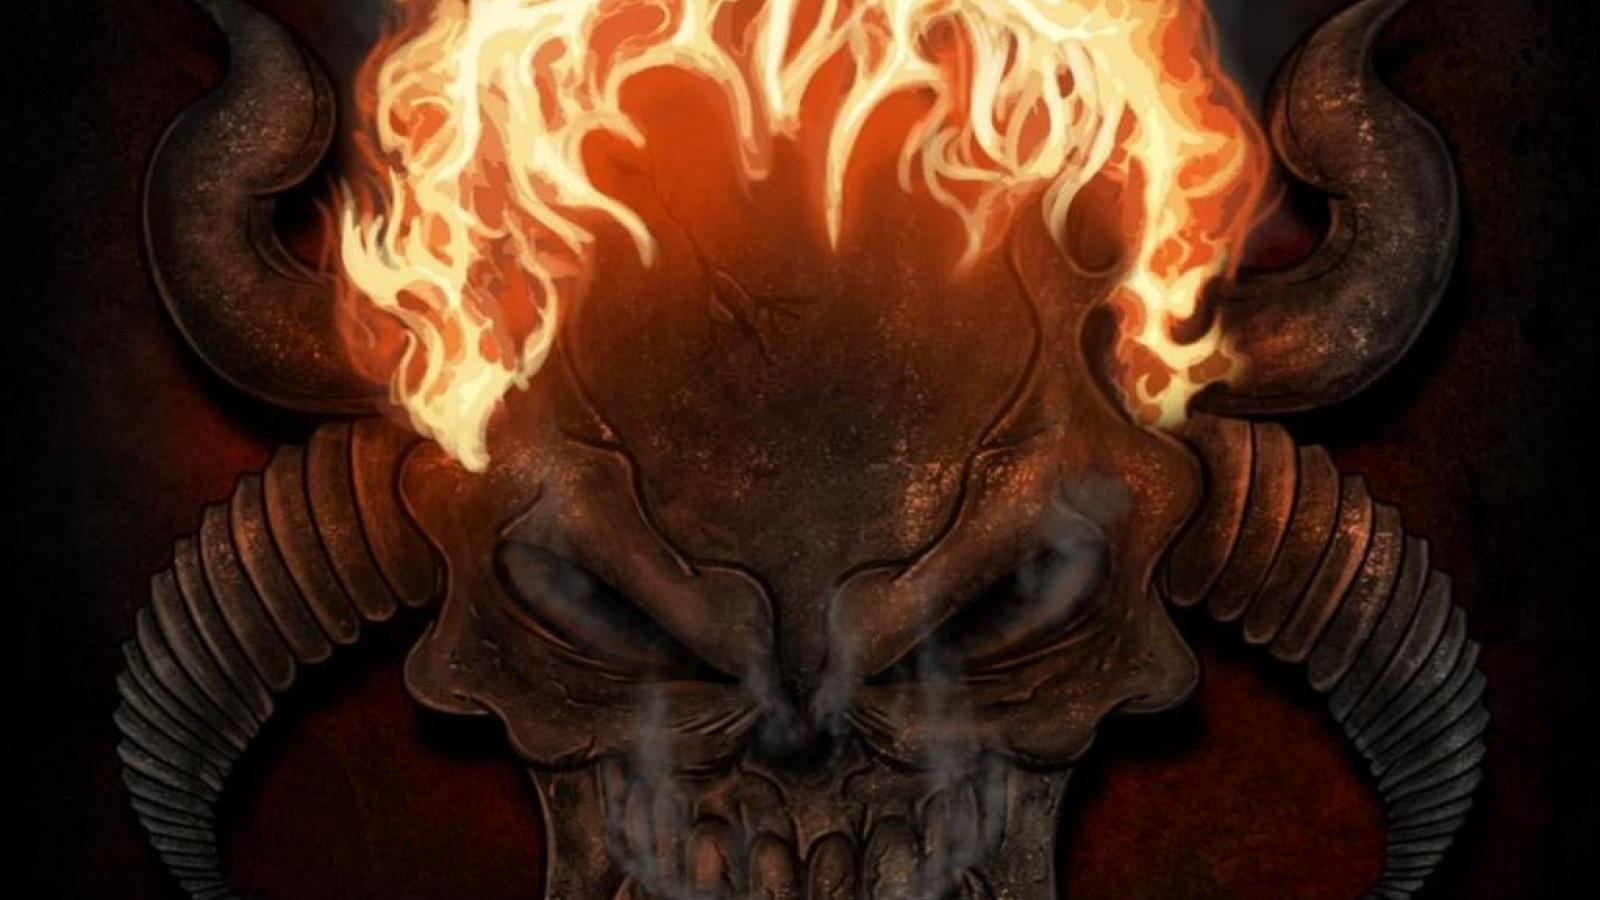 Skulls on fire wallpaper wallpapersafari - Devil skull wallpaper ...